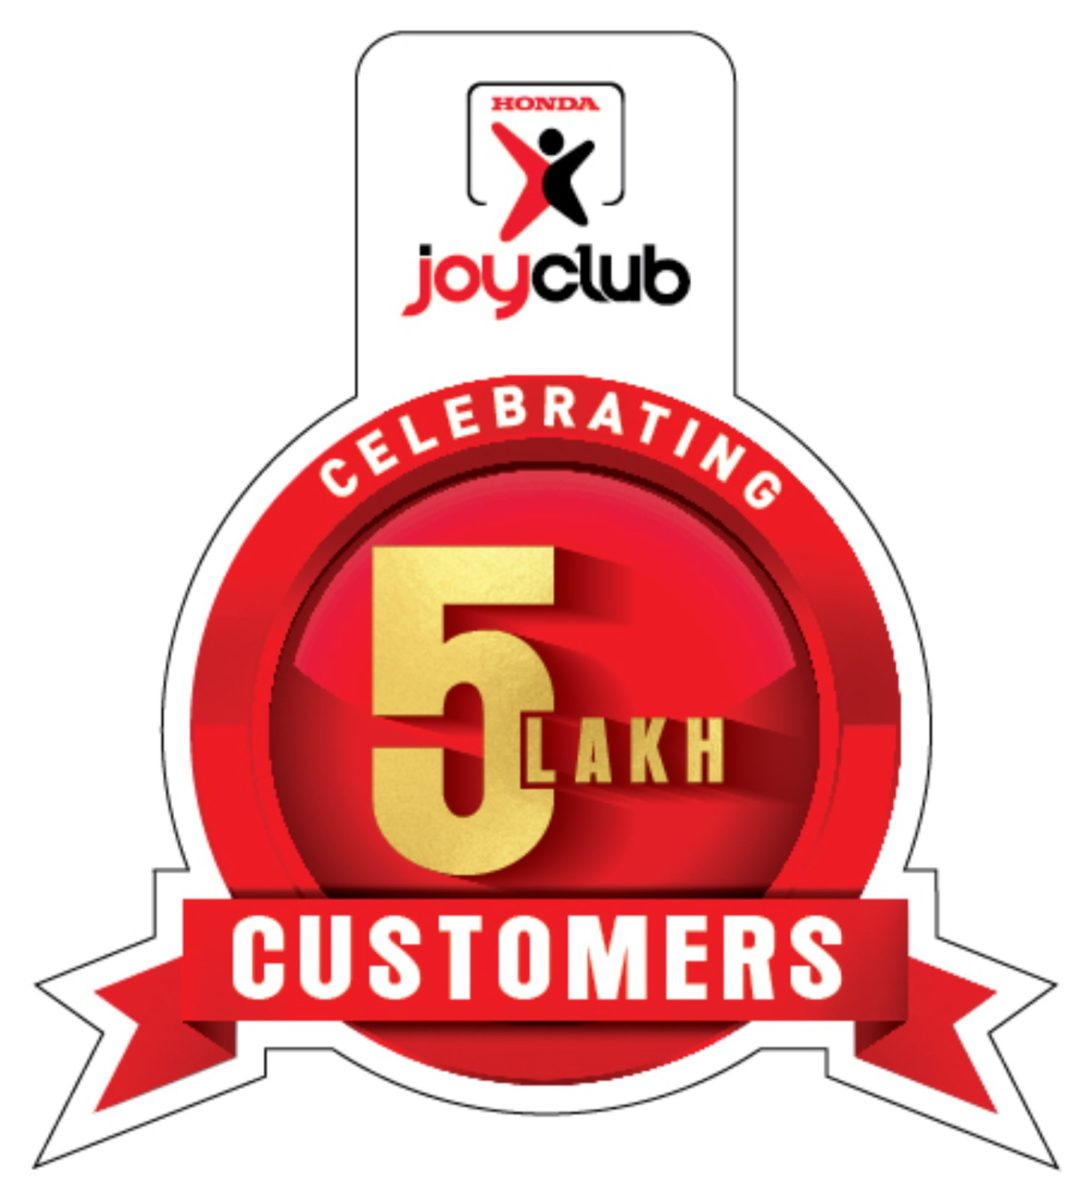 Honda 2Wheelers India celebrates the accomplishment of 5 Lakh members for 'Honda Joy Club'